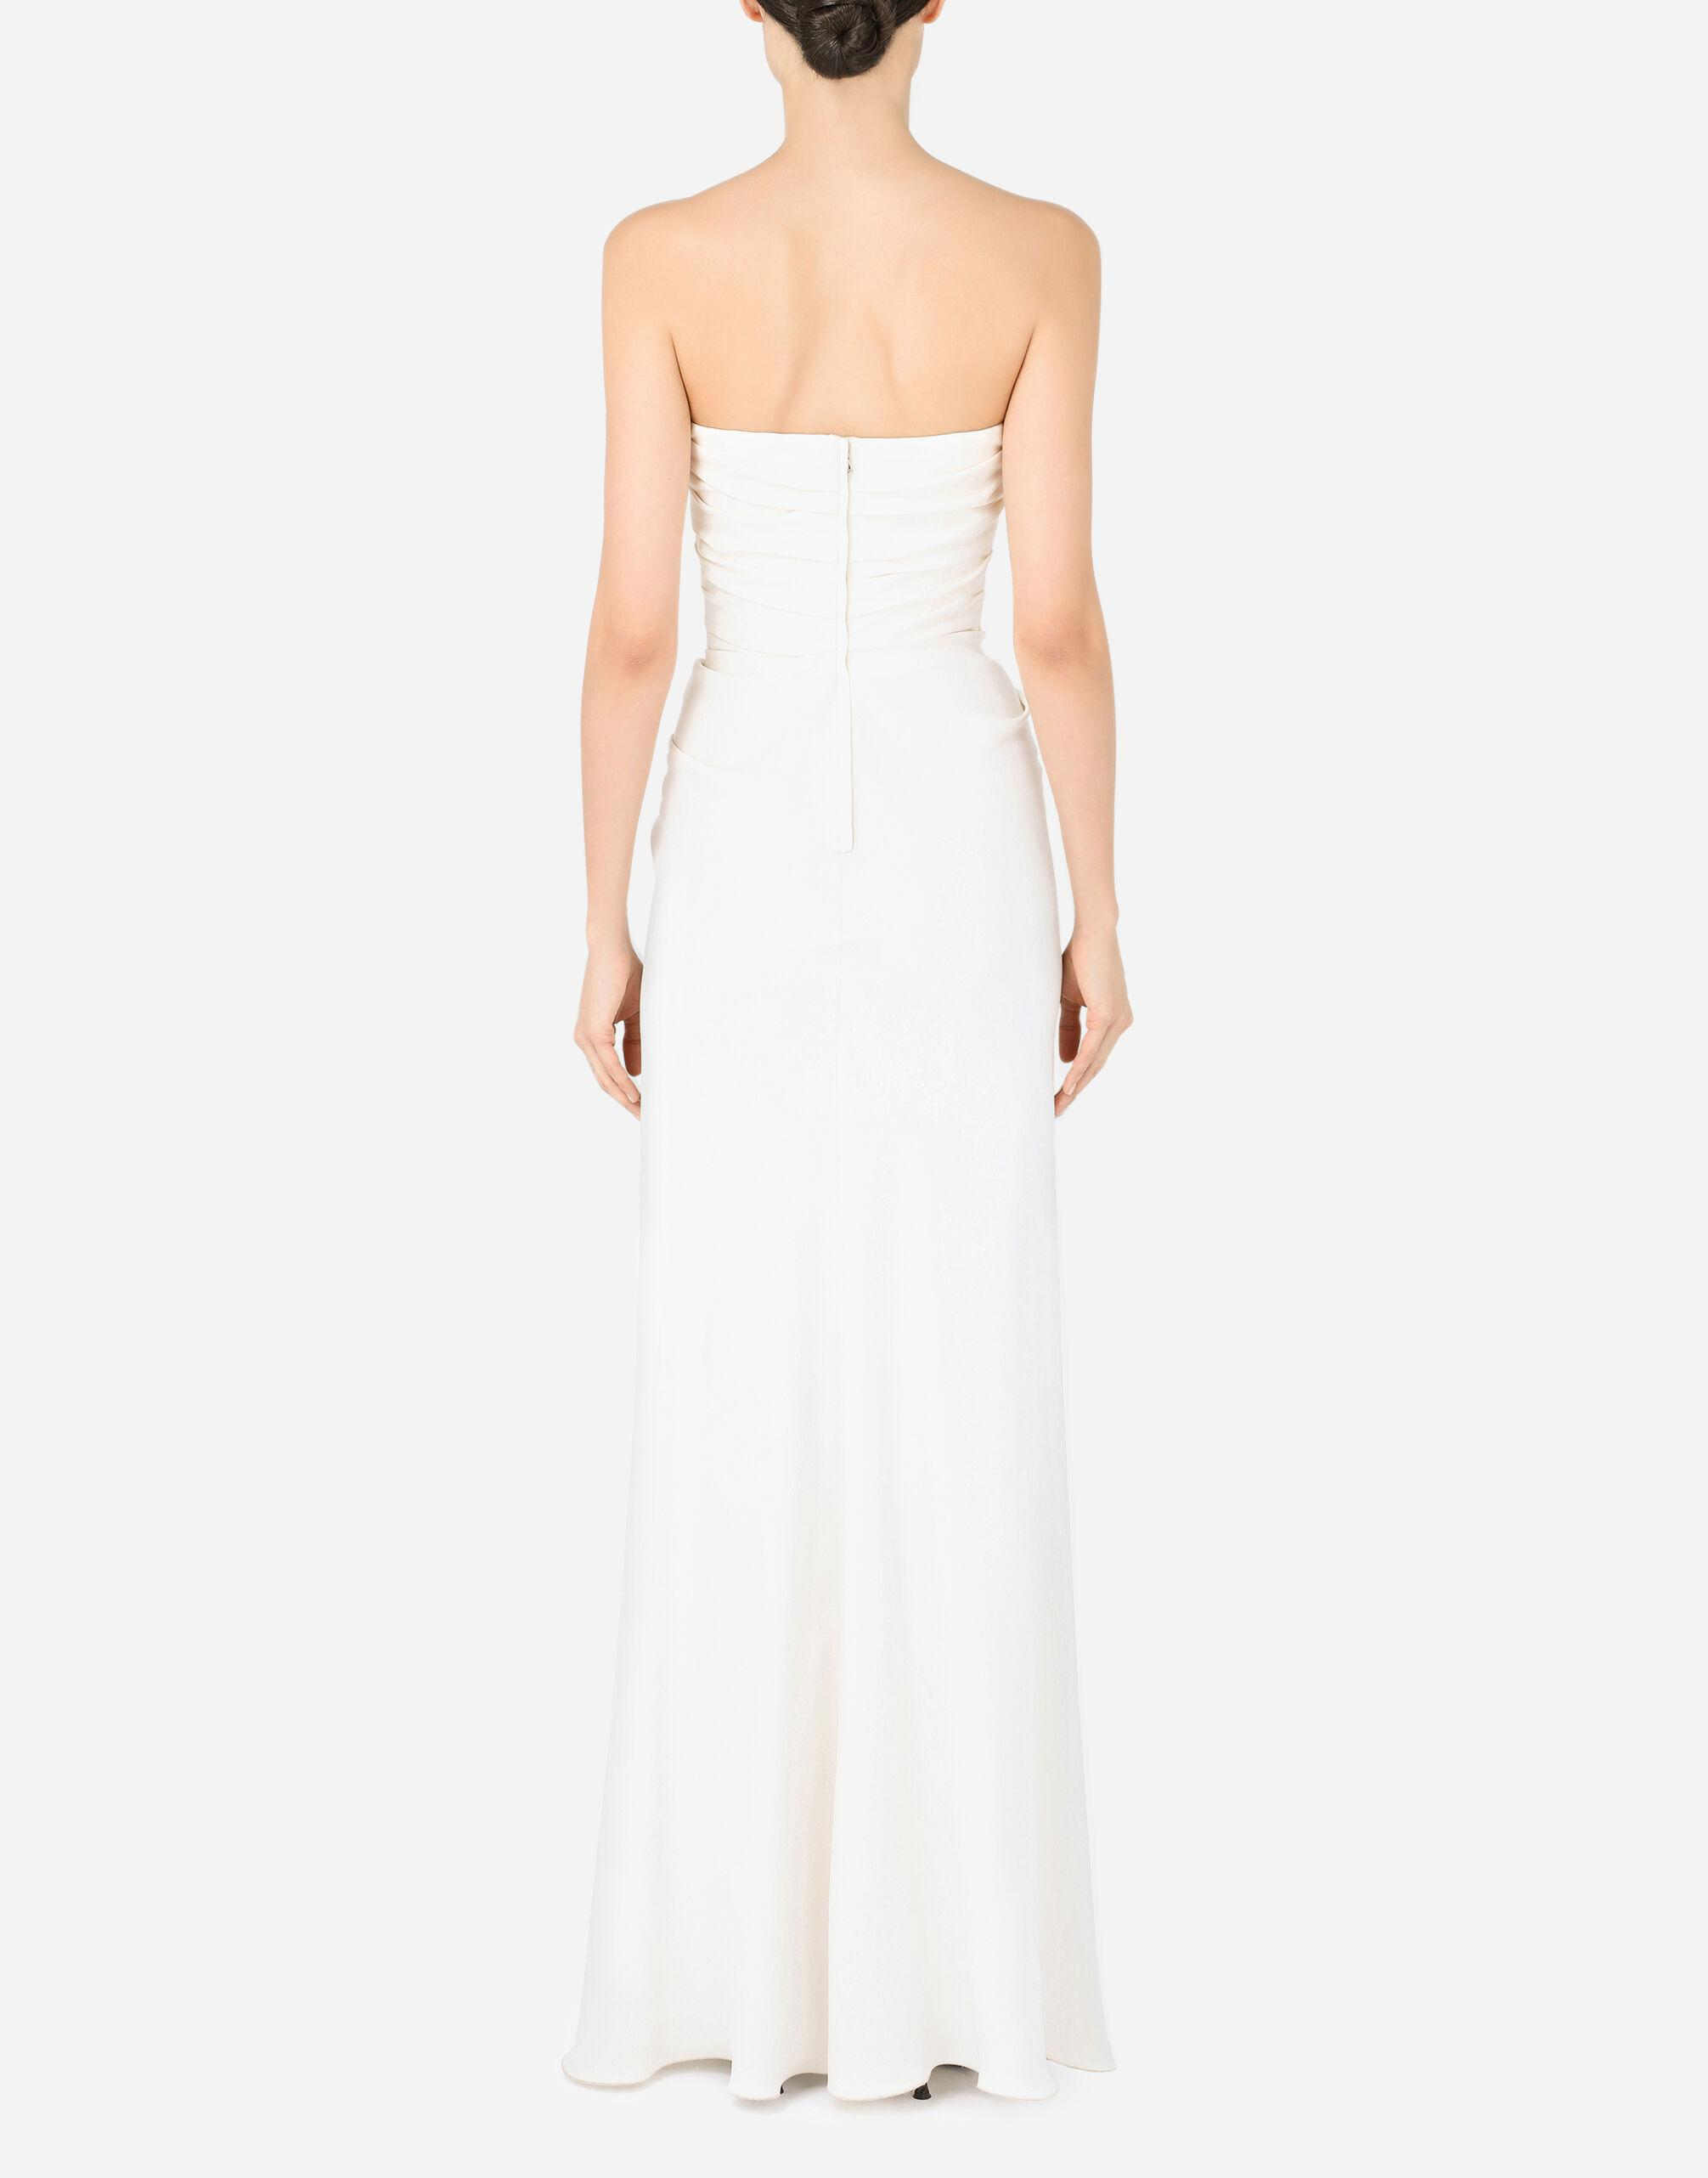 Long sable dress with side slit 1